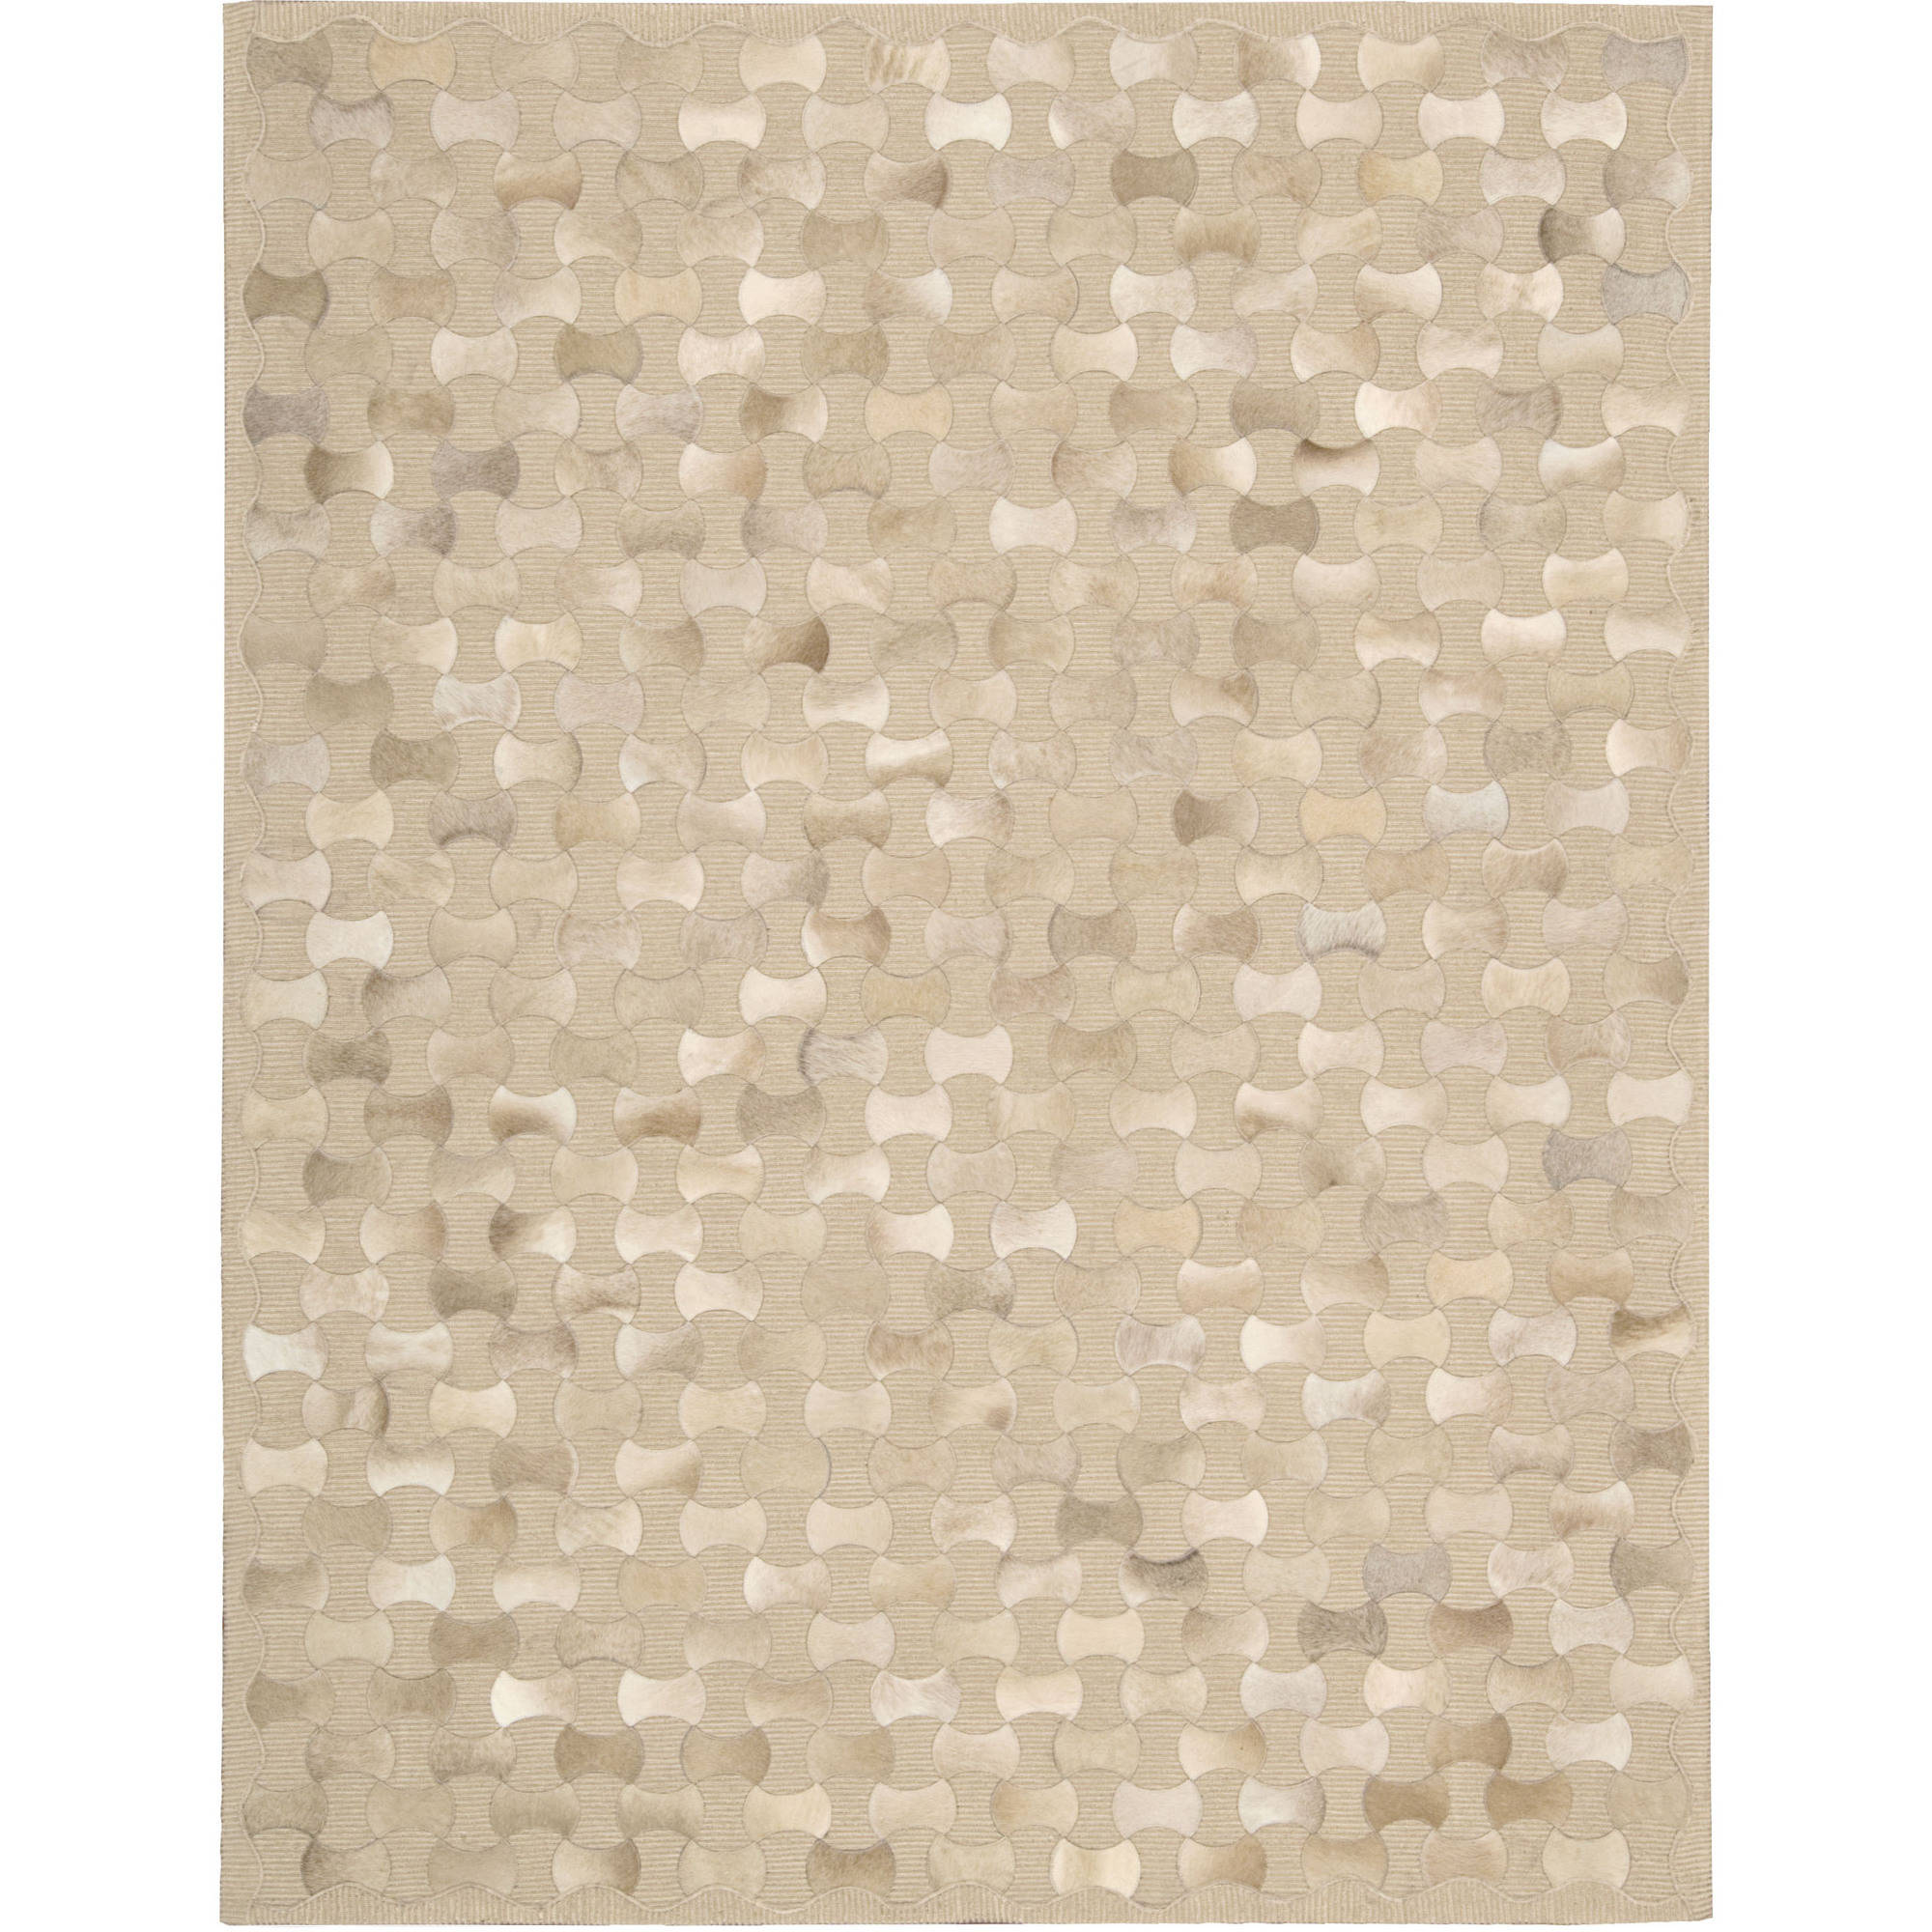 Nourison Joseph Aboud Chicago Area Rug